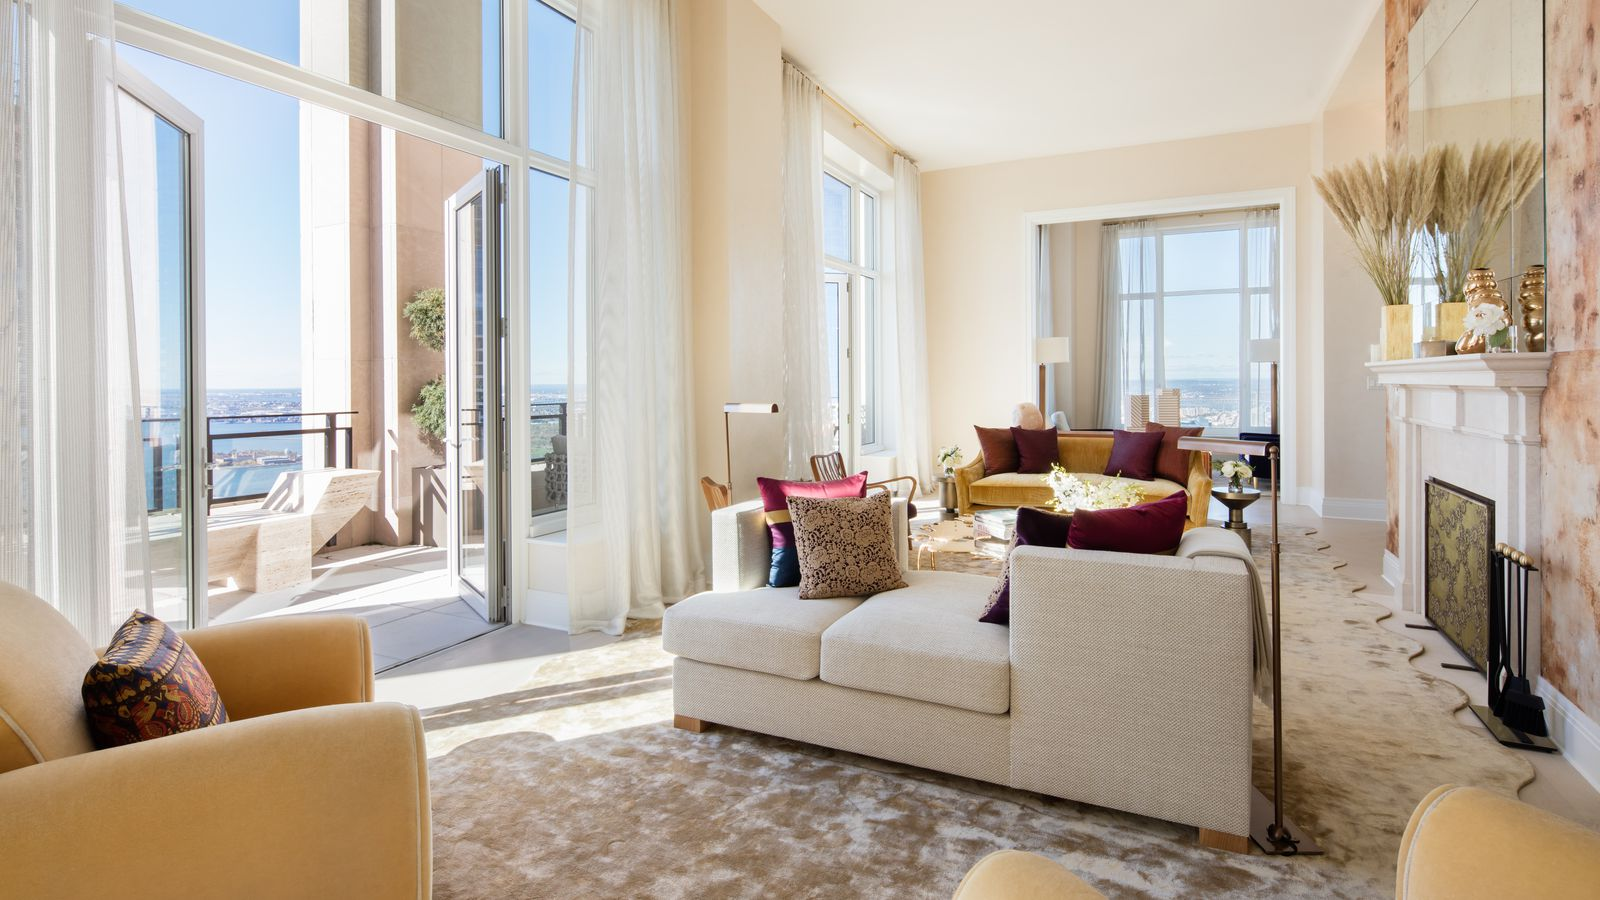 30 Park Place Penthouse Asking 30m Is In Contract Curbed Ny